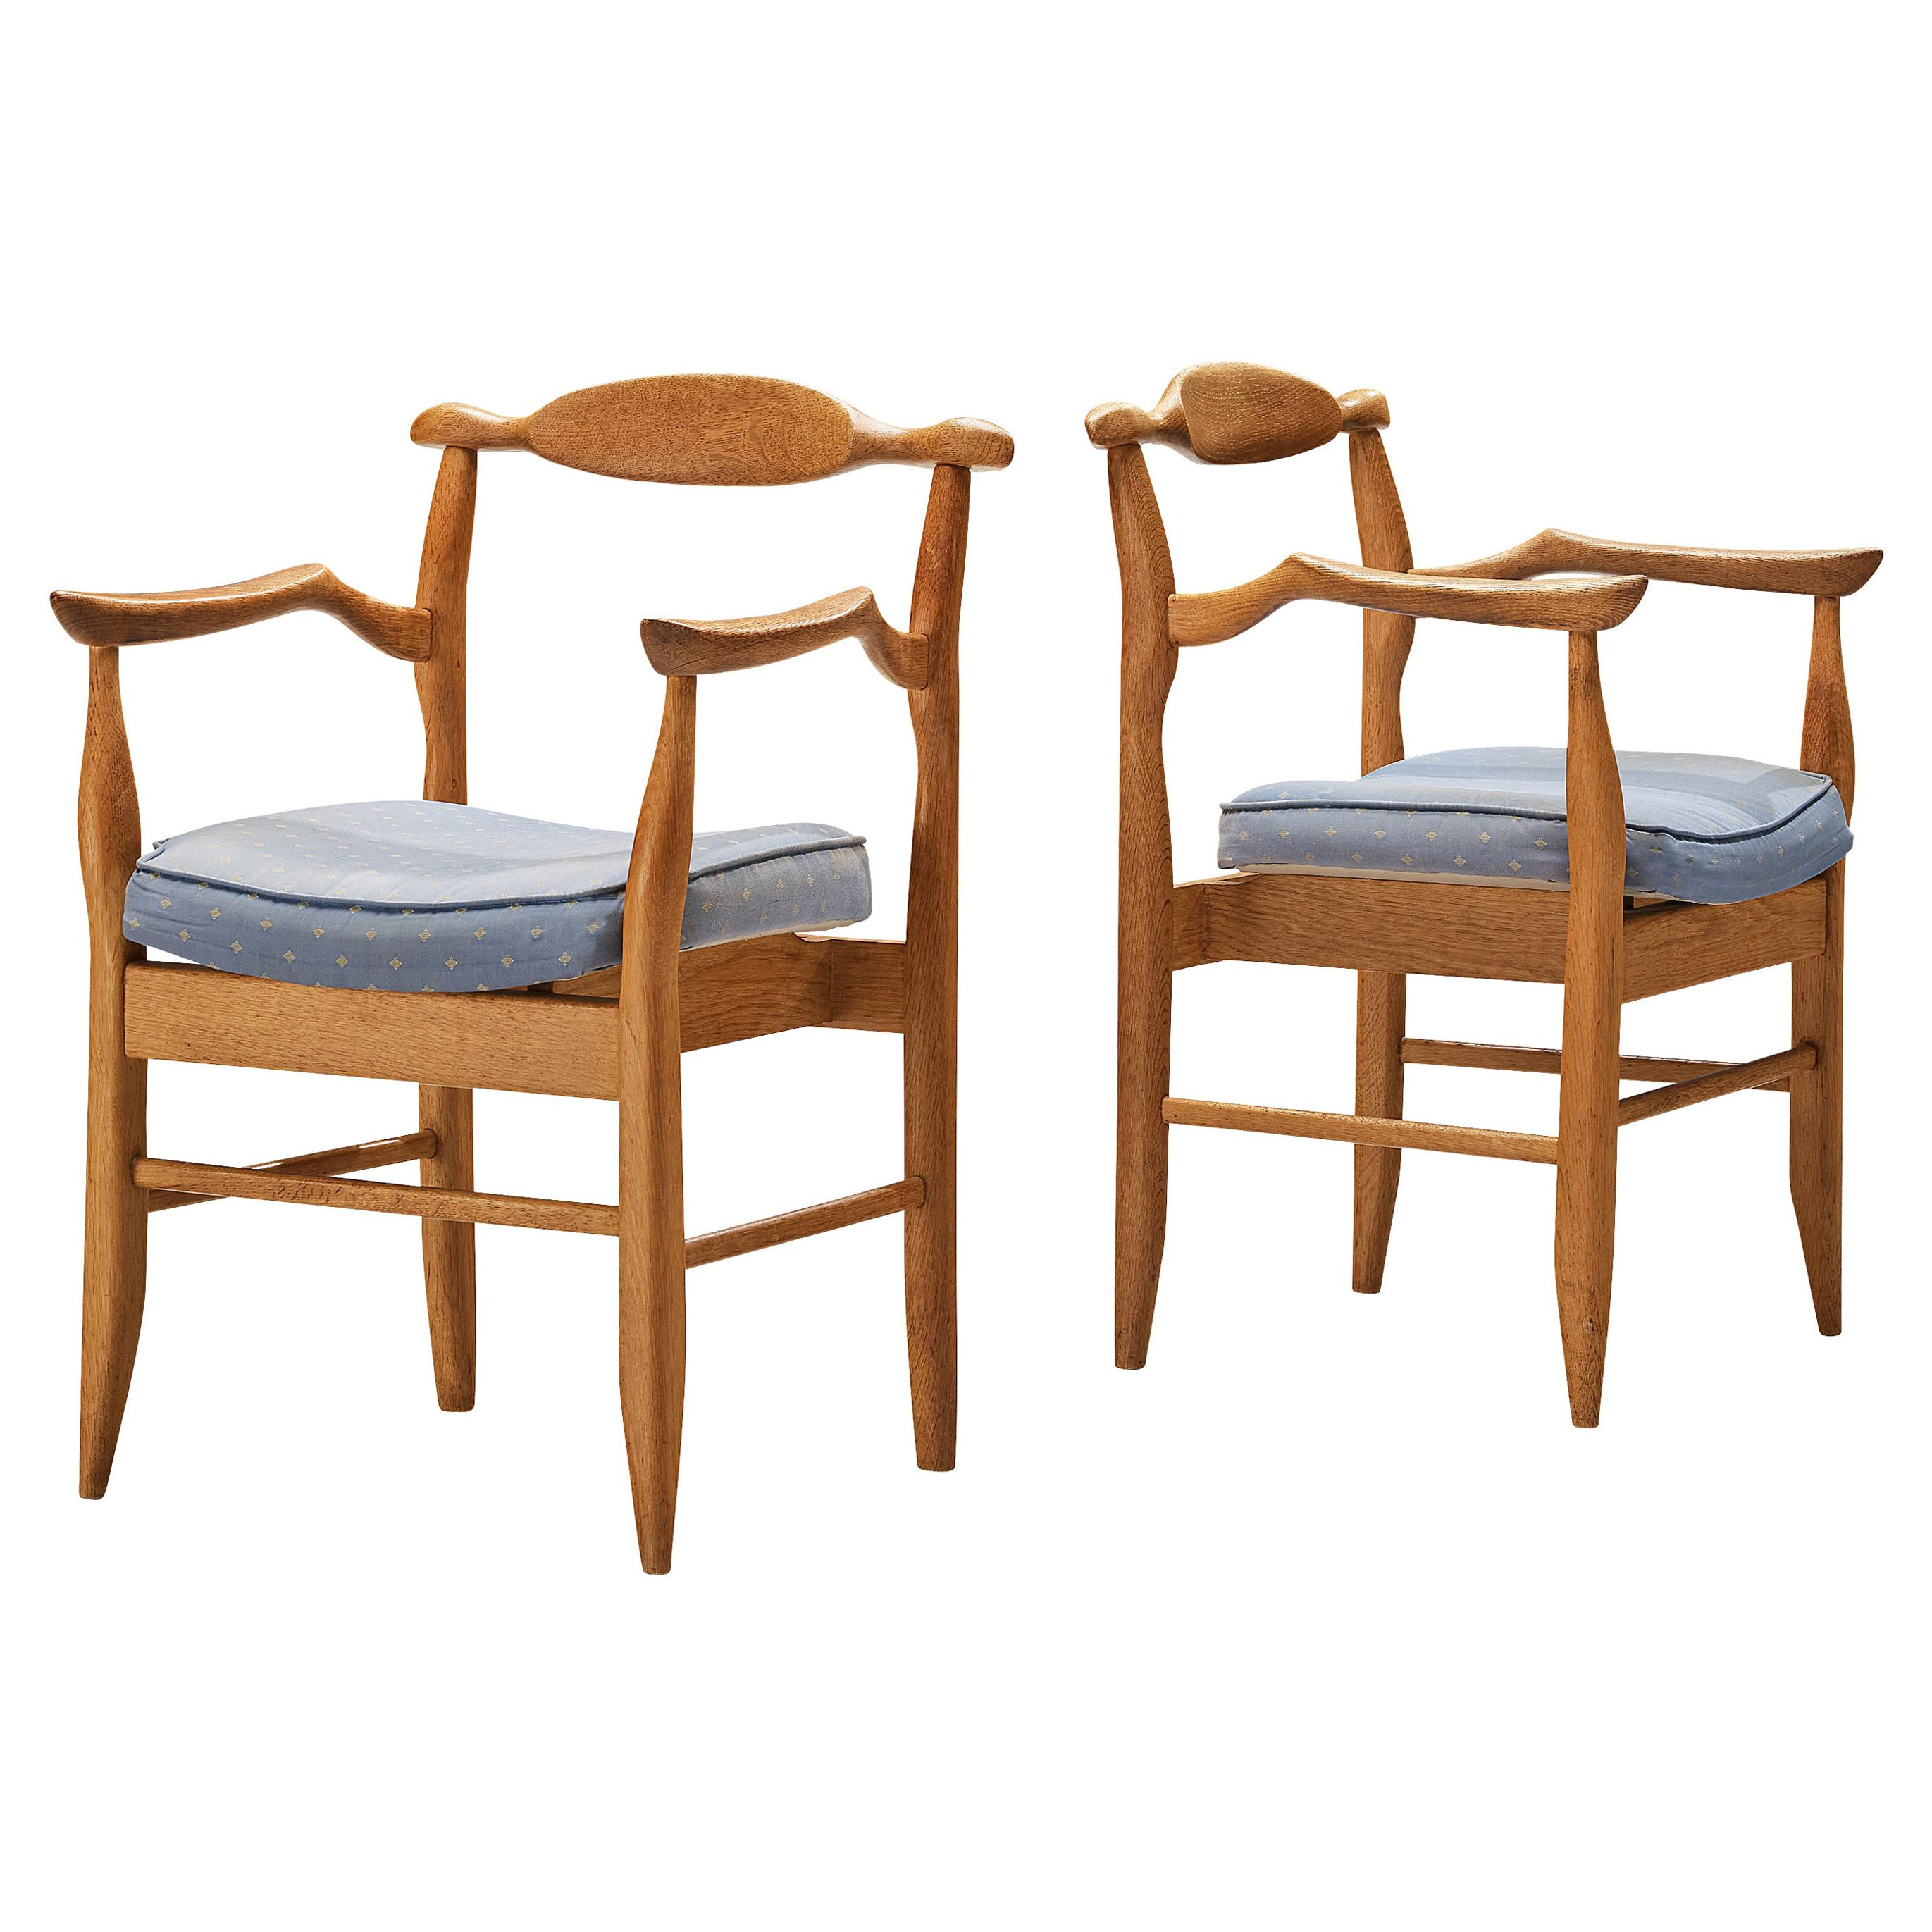 Guillerme & Chambron Pair of Armchairs Model 'Fumay' in Oak and Blue Upholstery